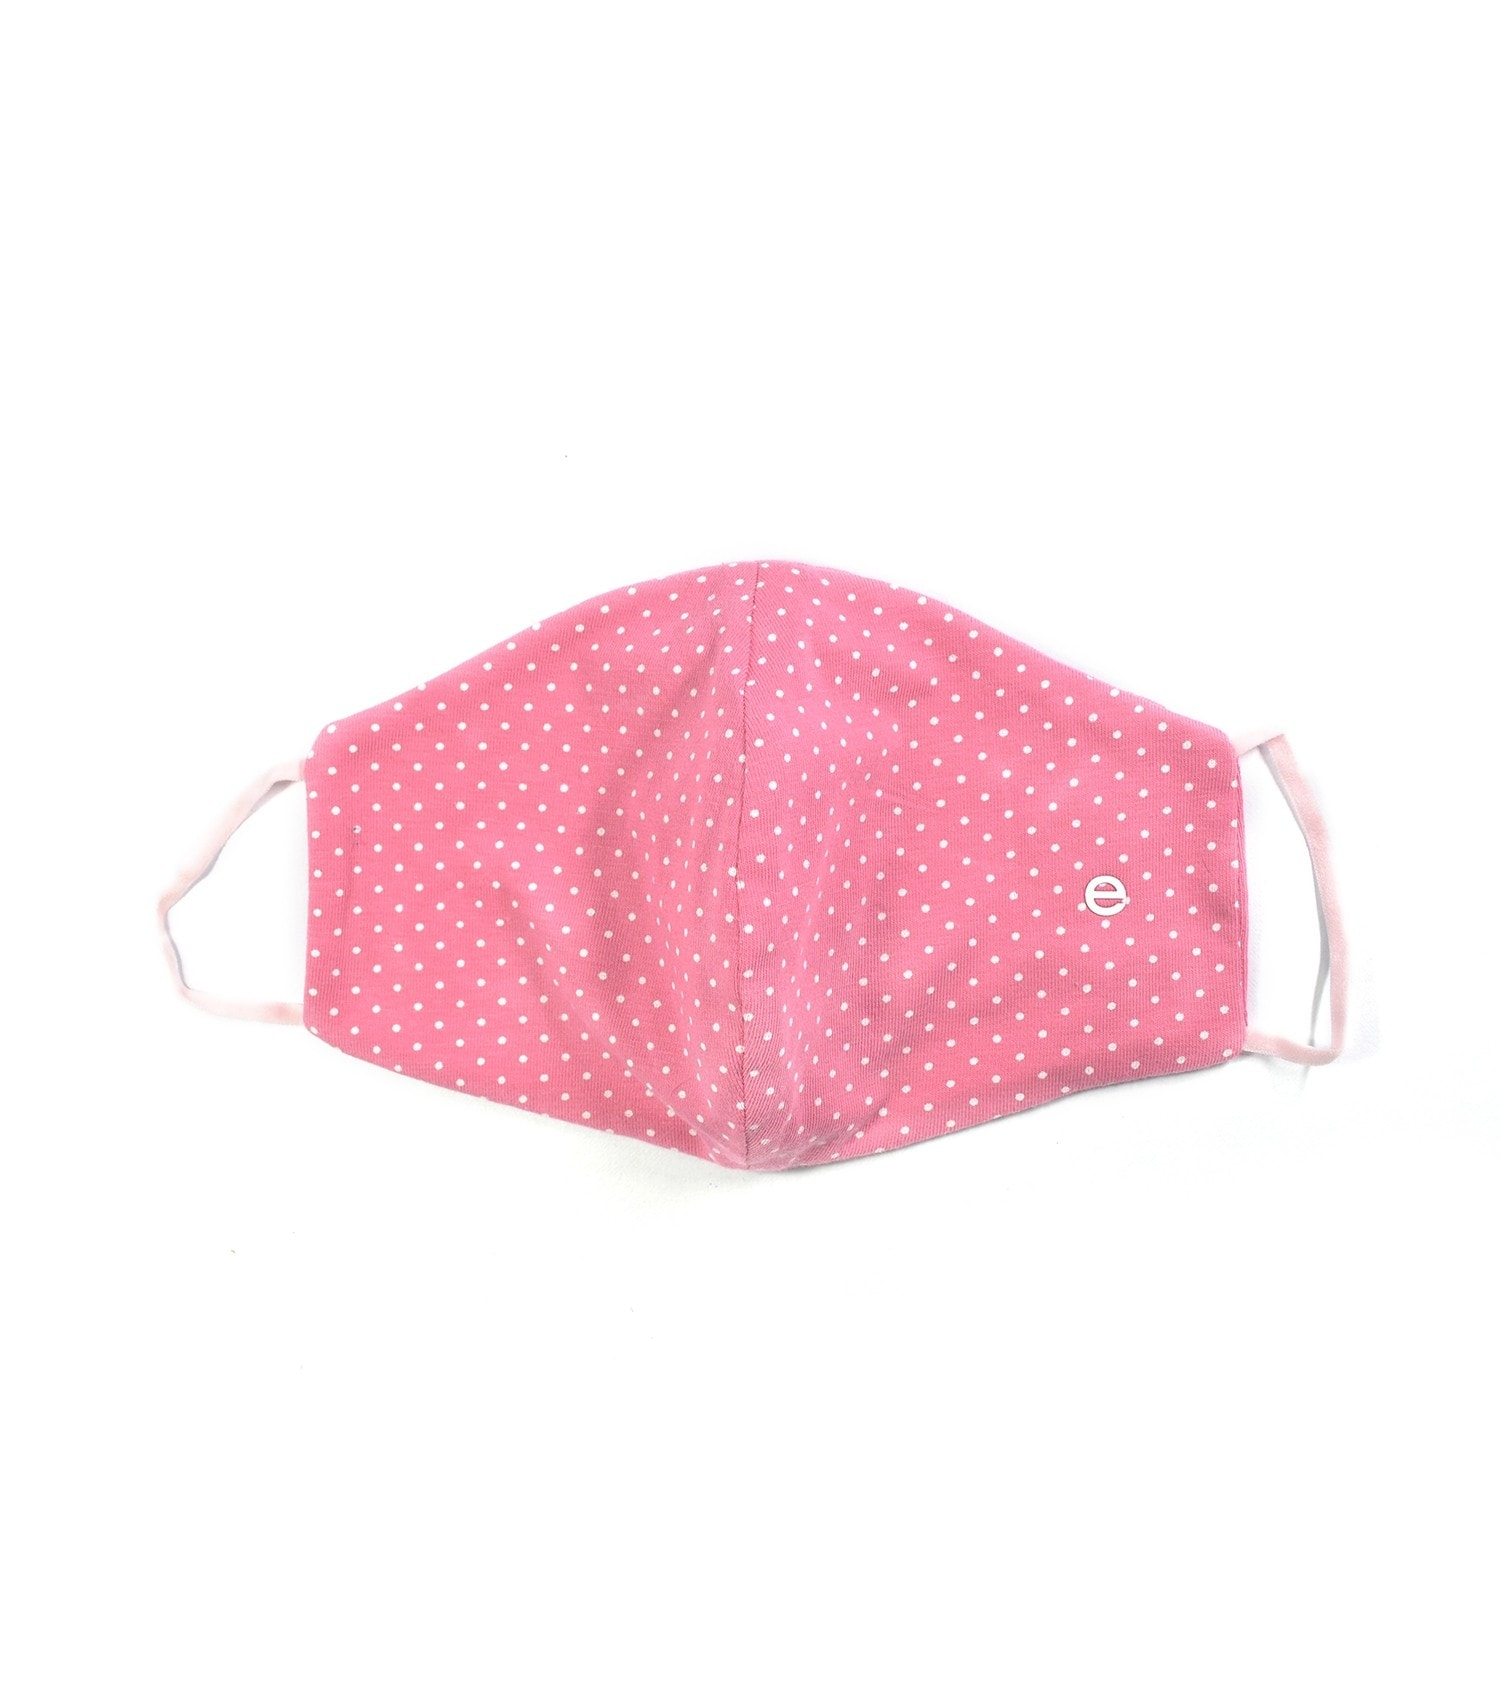 Enamor W001 SMART MASK : 3 Layer Cotton Jersey Outdoor Mask   >95% Protection (S,Pink -White Polka Dots)